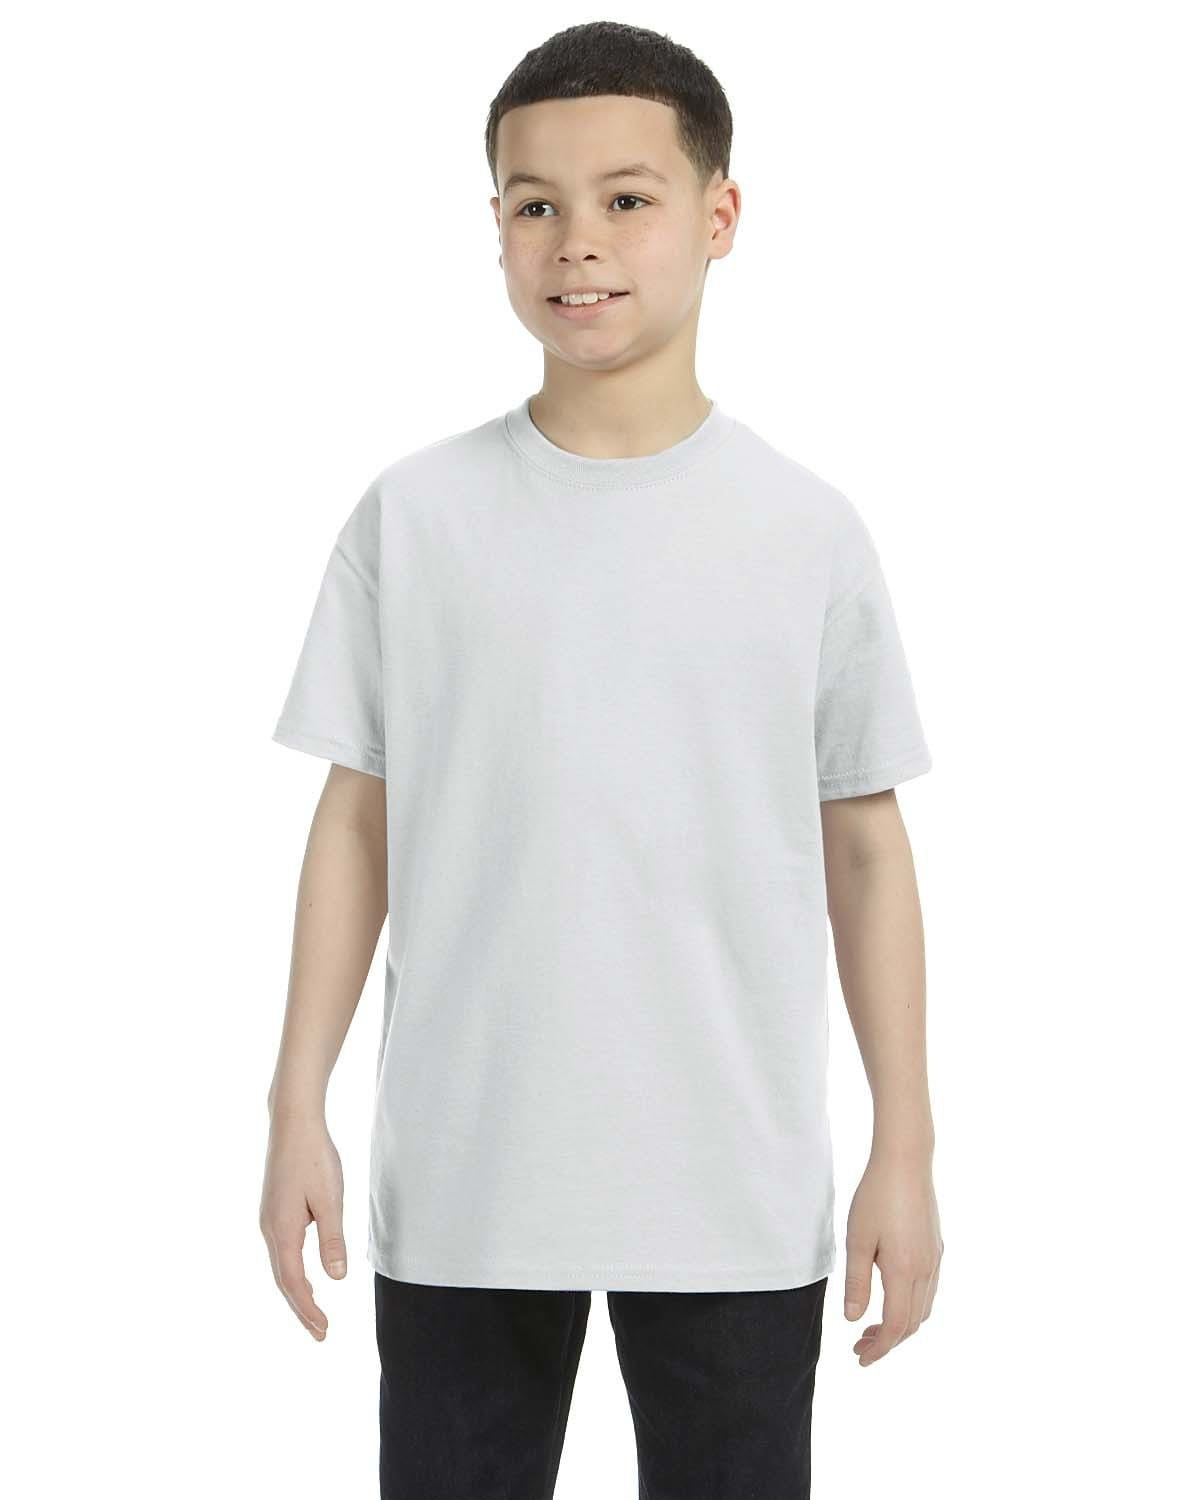 g500b-youth-heavy-cotton-5-3oz-t-shirt-xl-XL-ASH GREY-Oasispromos